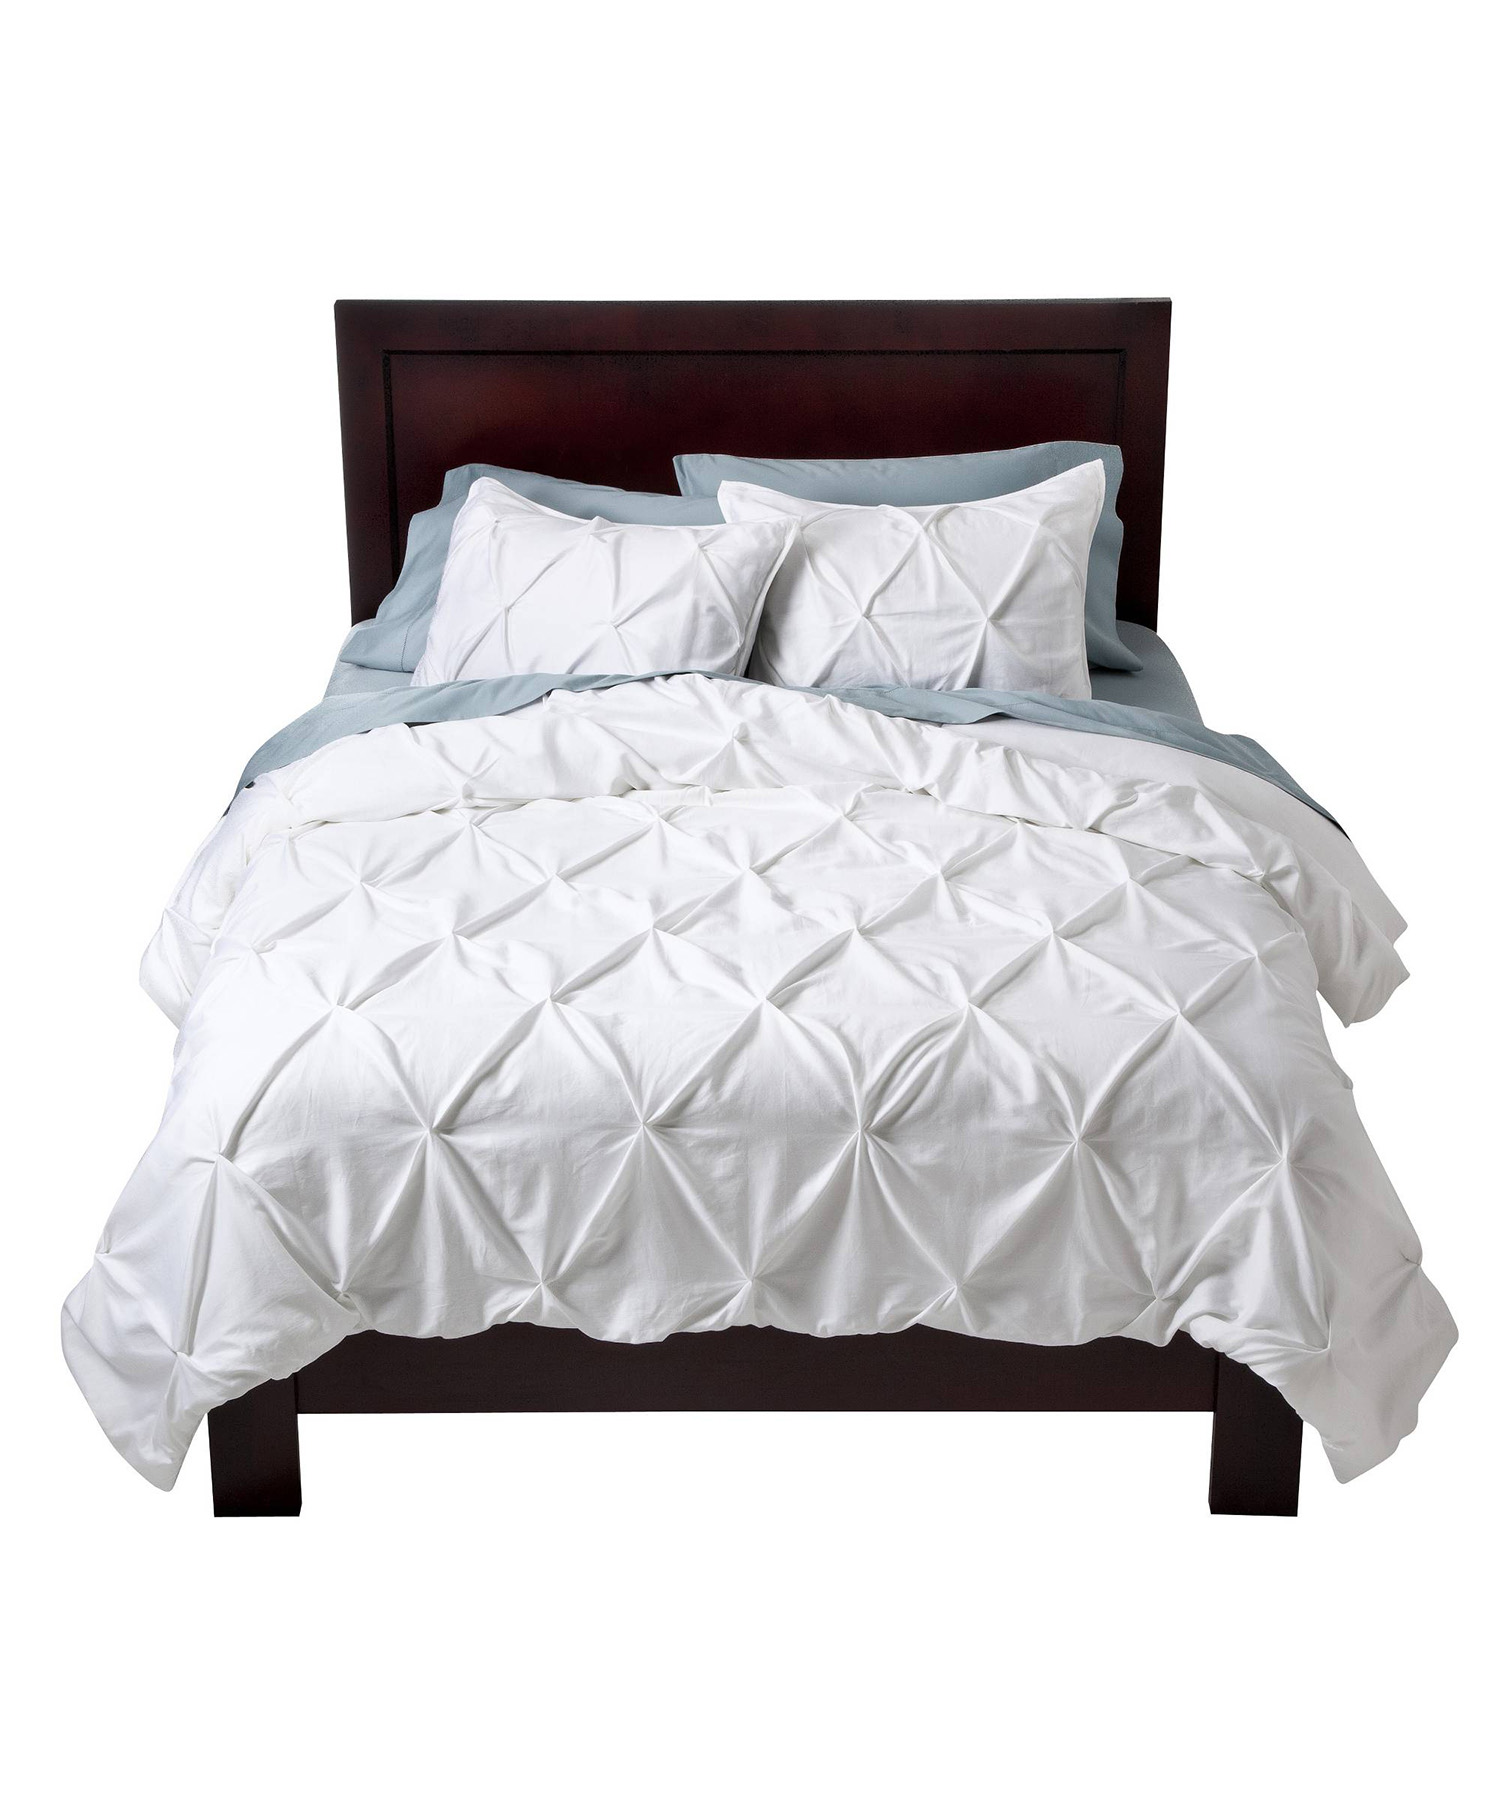 Pleated White Comforter